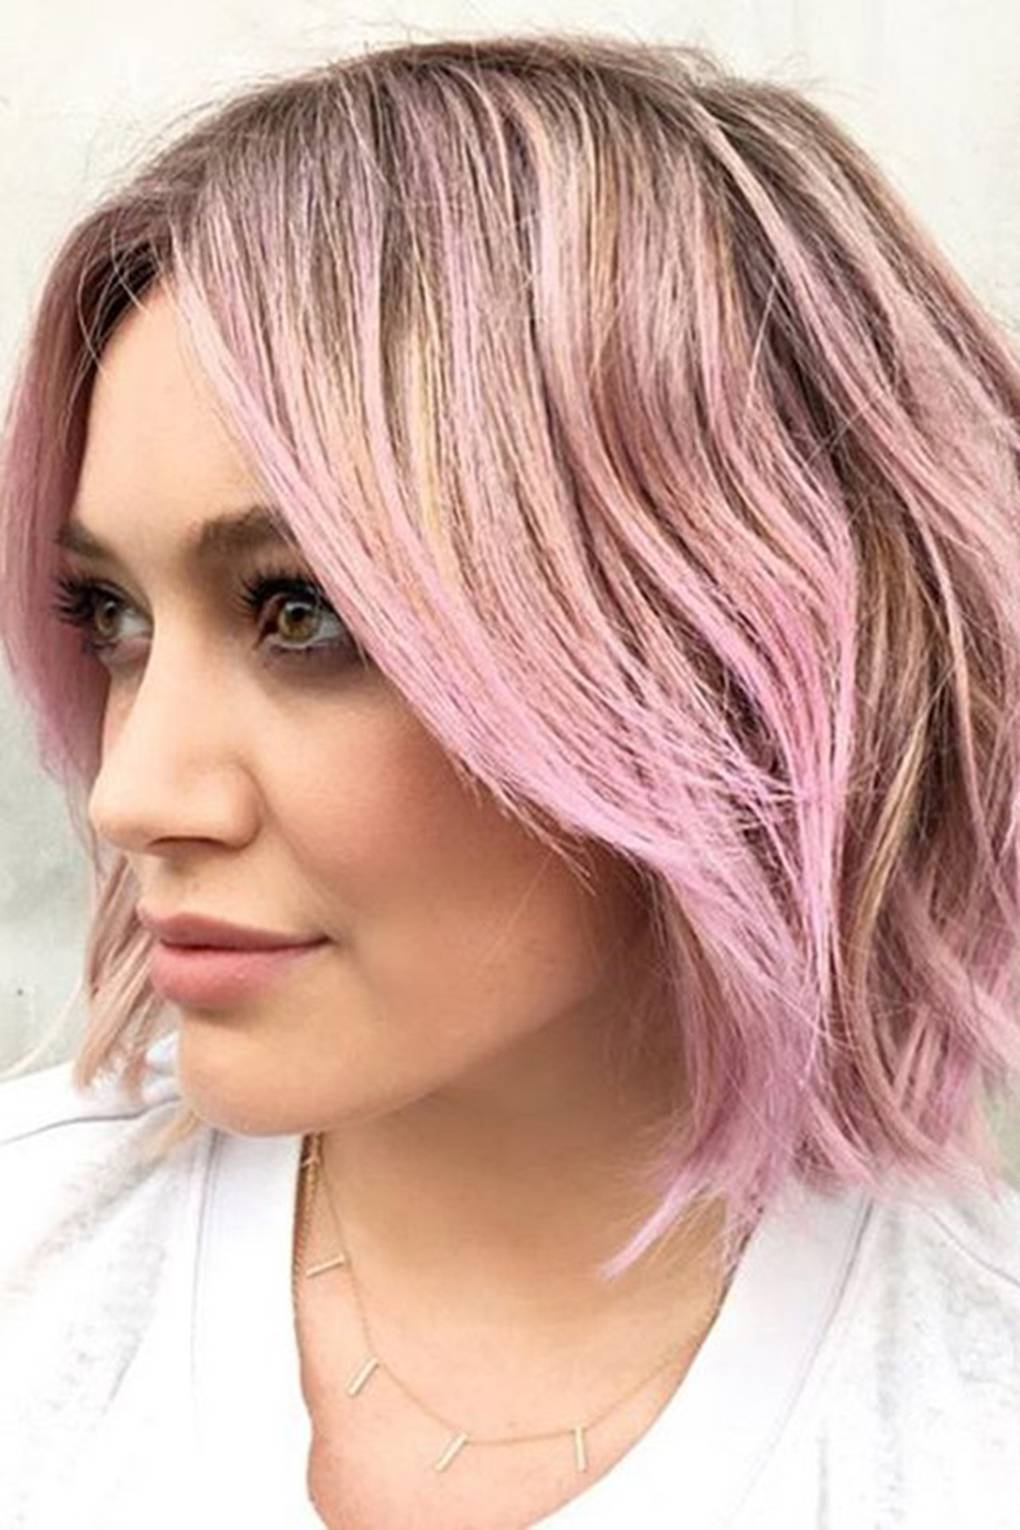 pics Elsa Hosks Newly Dyed Rose-Gold Hair Is Everything and More